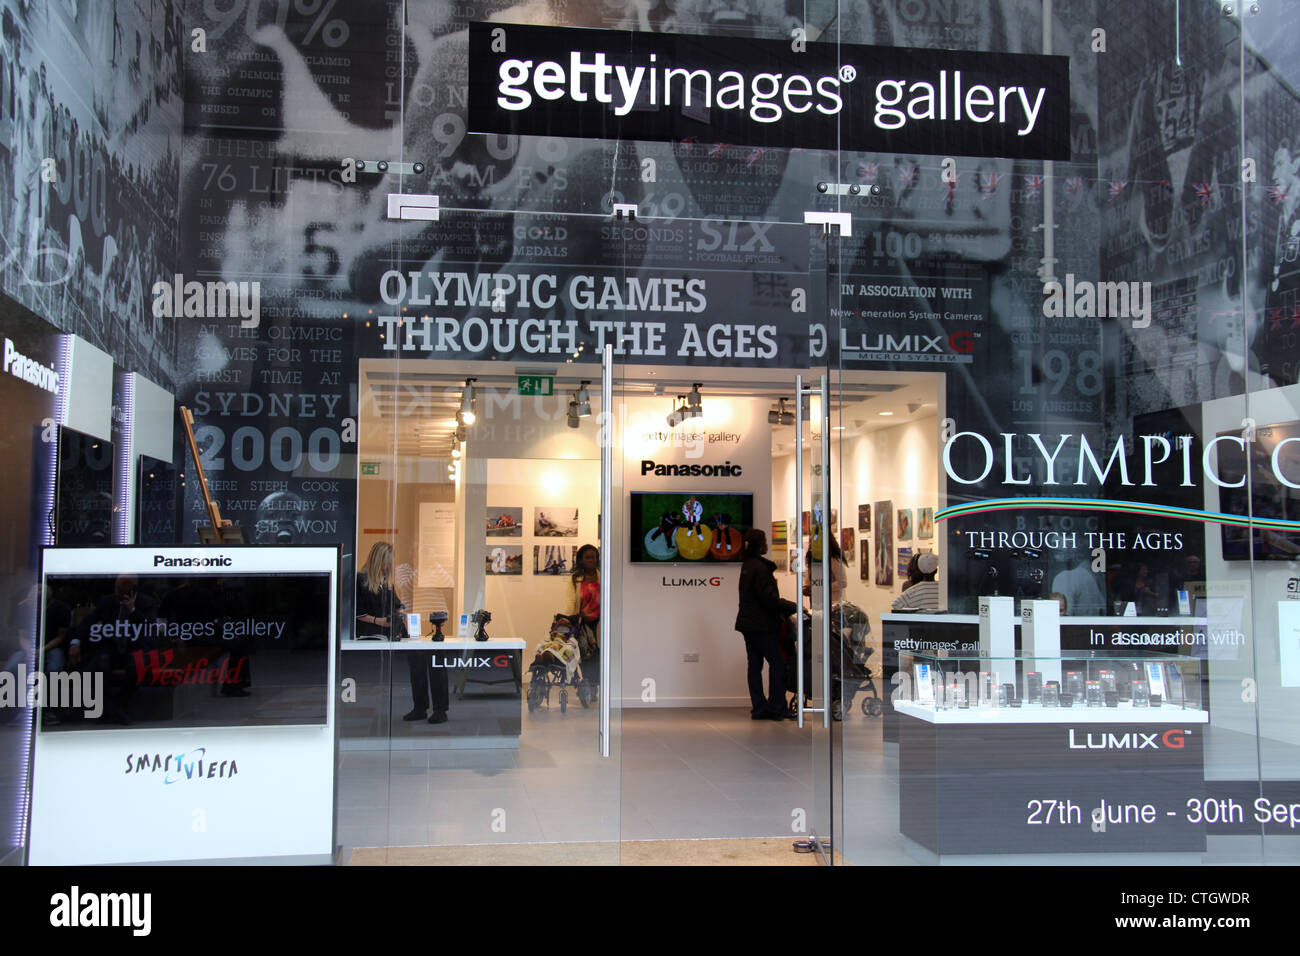 Getty Images Gallery at Westfield Stratford City in London - Stock Image